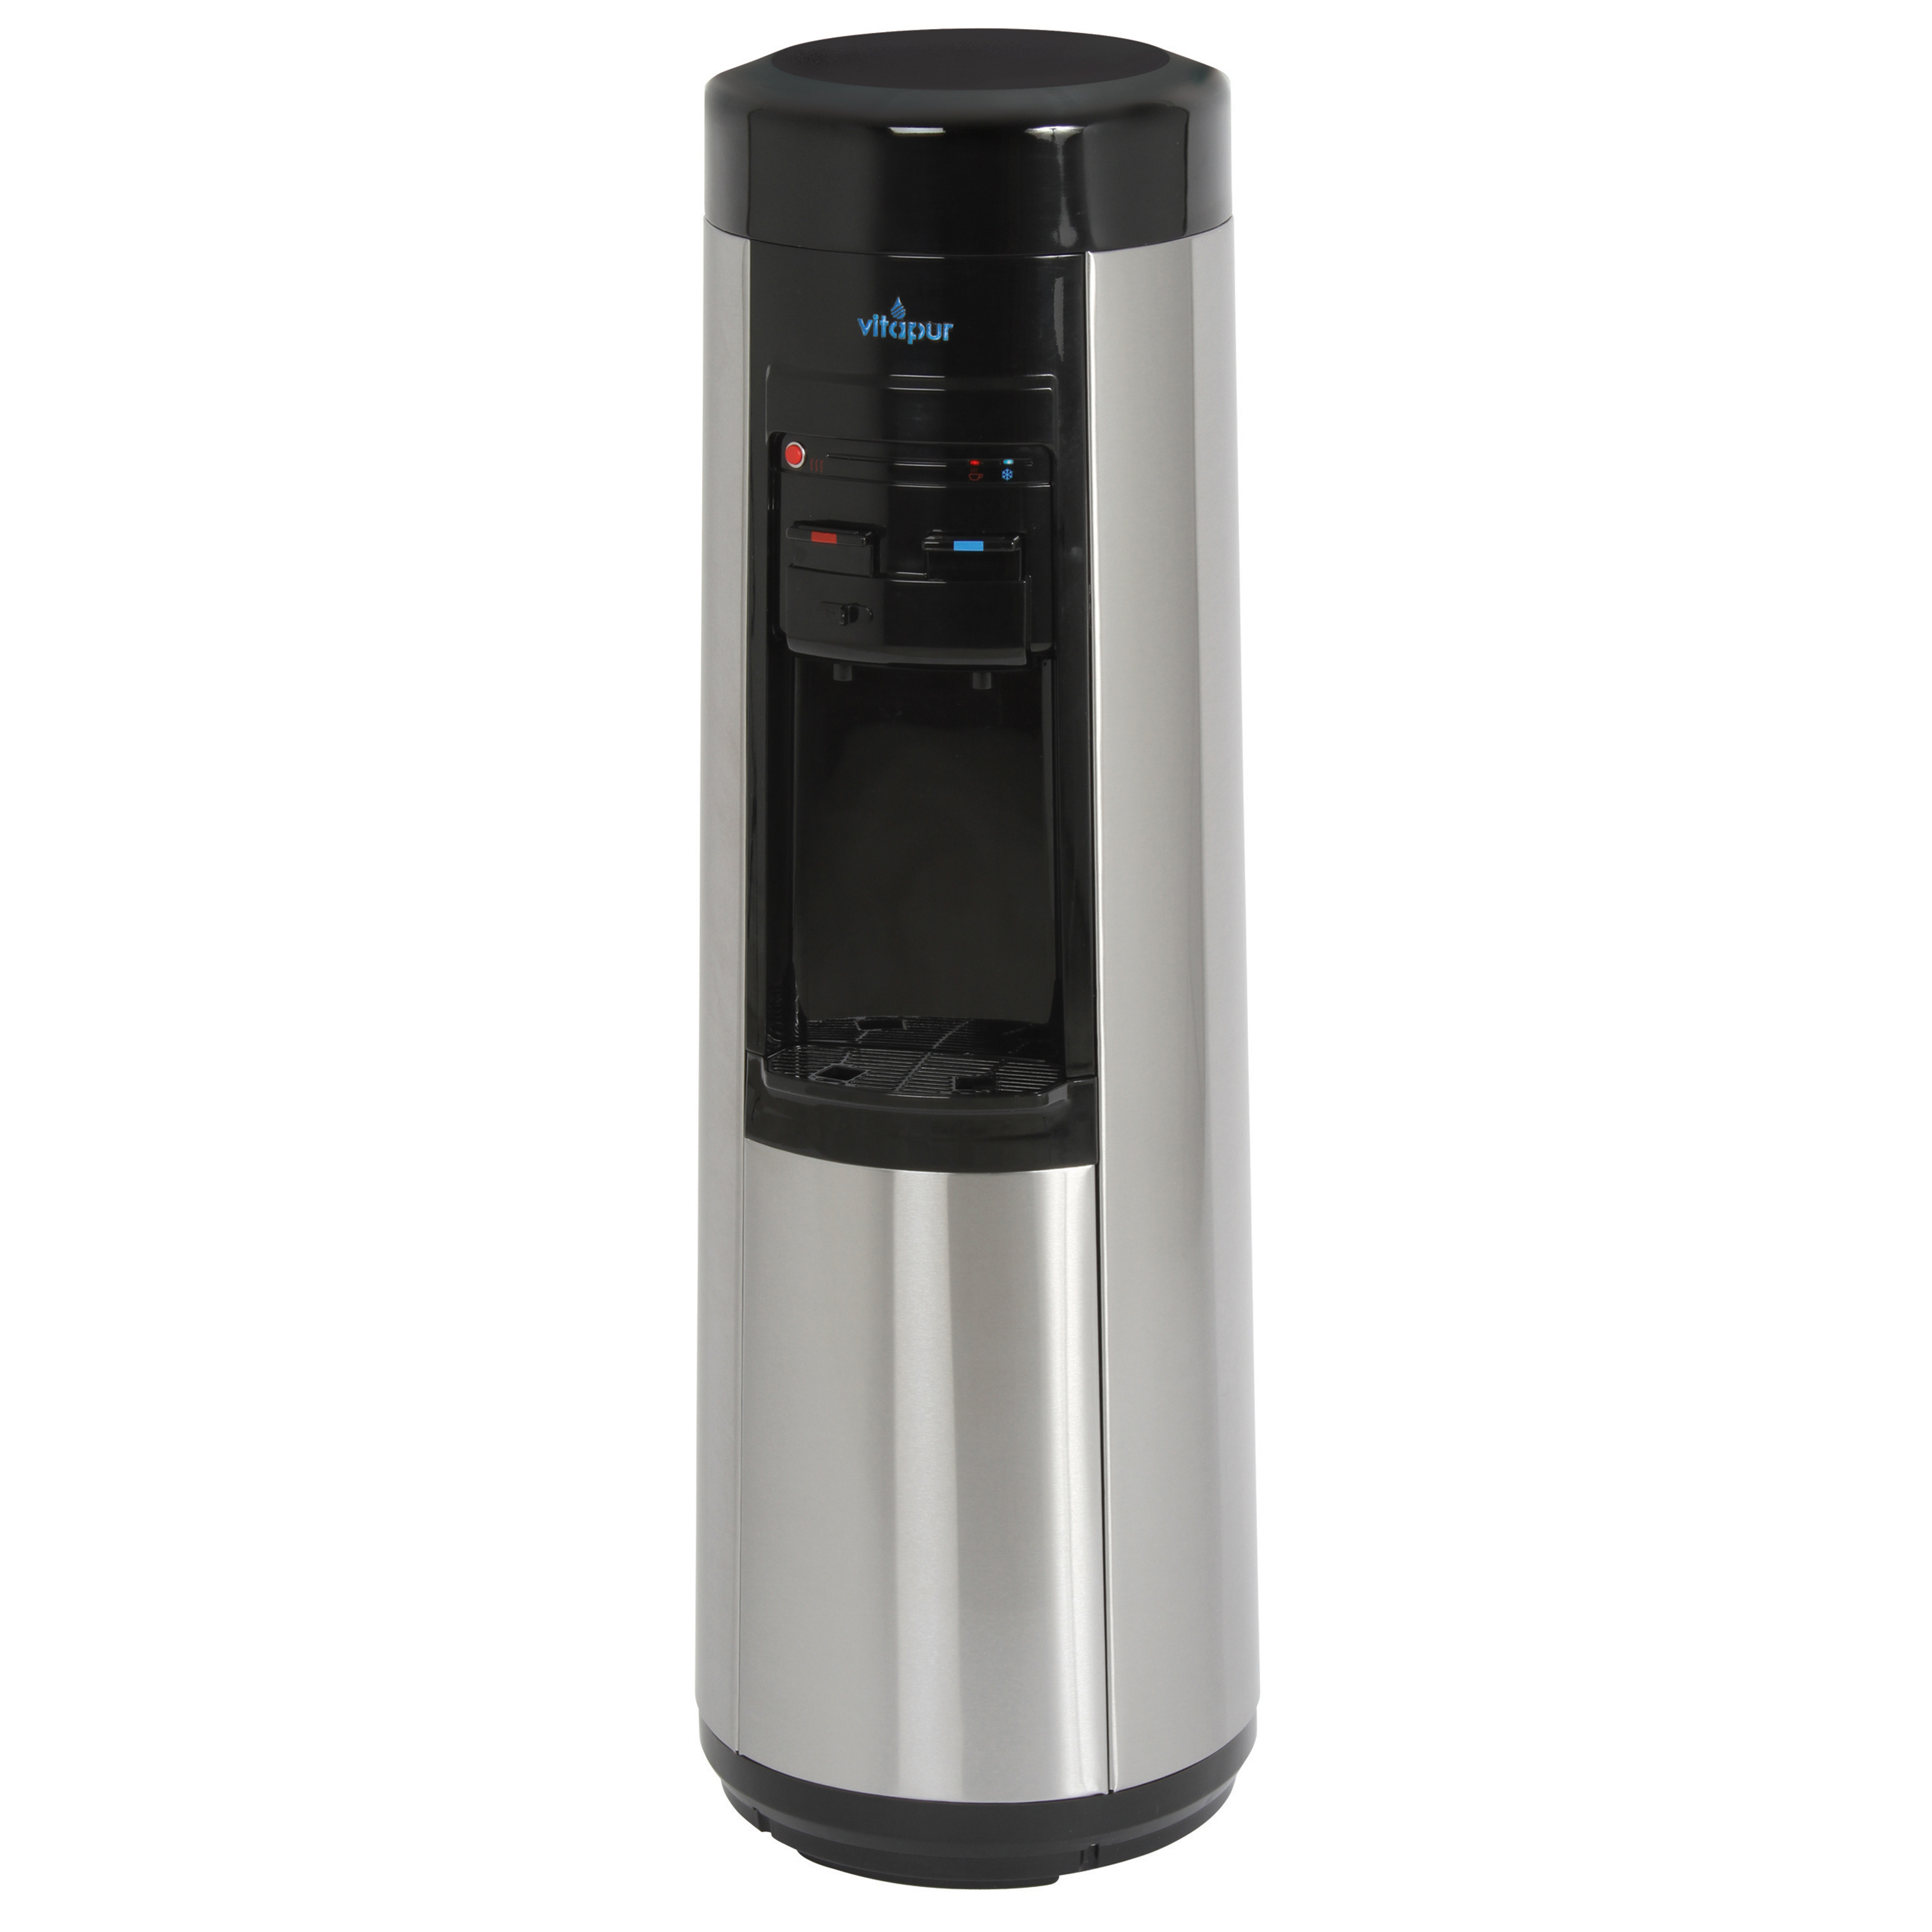 Vitapur VWD9506BLS Point-of -Use Water Dispenser (Hot, Room and Cold) Black/Stainless Steel